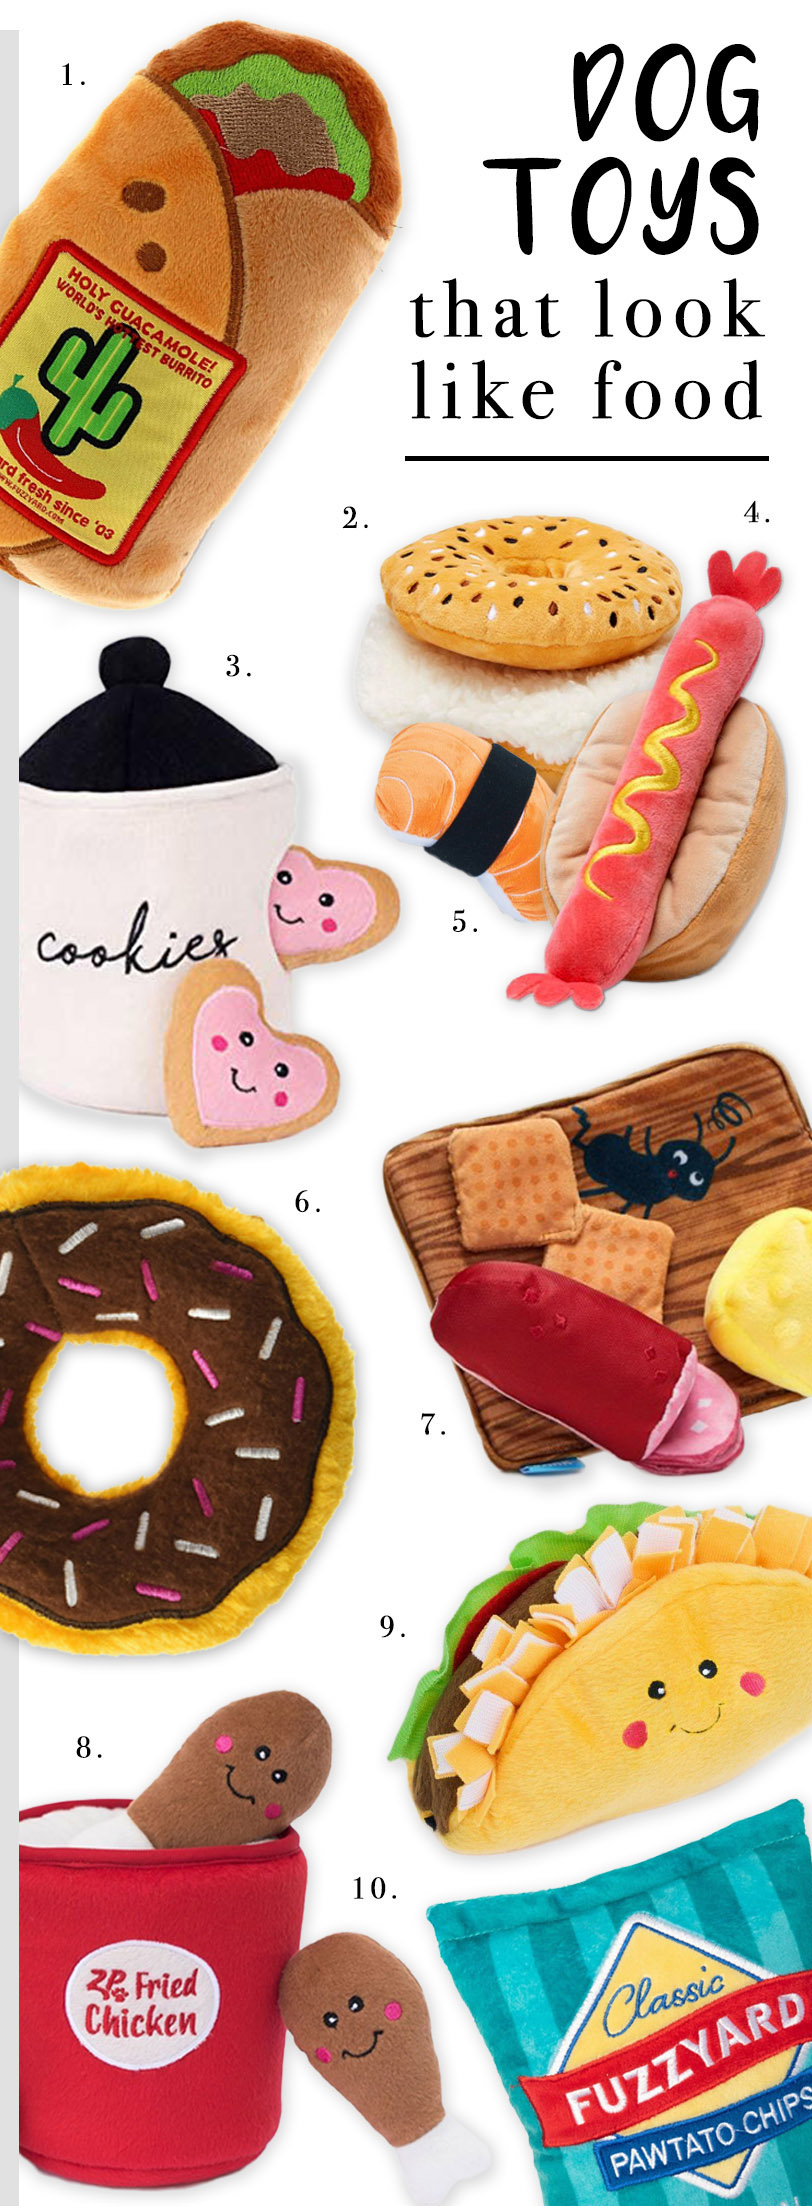 ROUND-UP: 22 Dog Toys That Look Like Food (Including Burritos!) - heydjangles.com - plush dog toys, food-themed dog toys, fun dog toys for foodies.